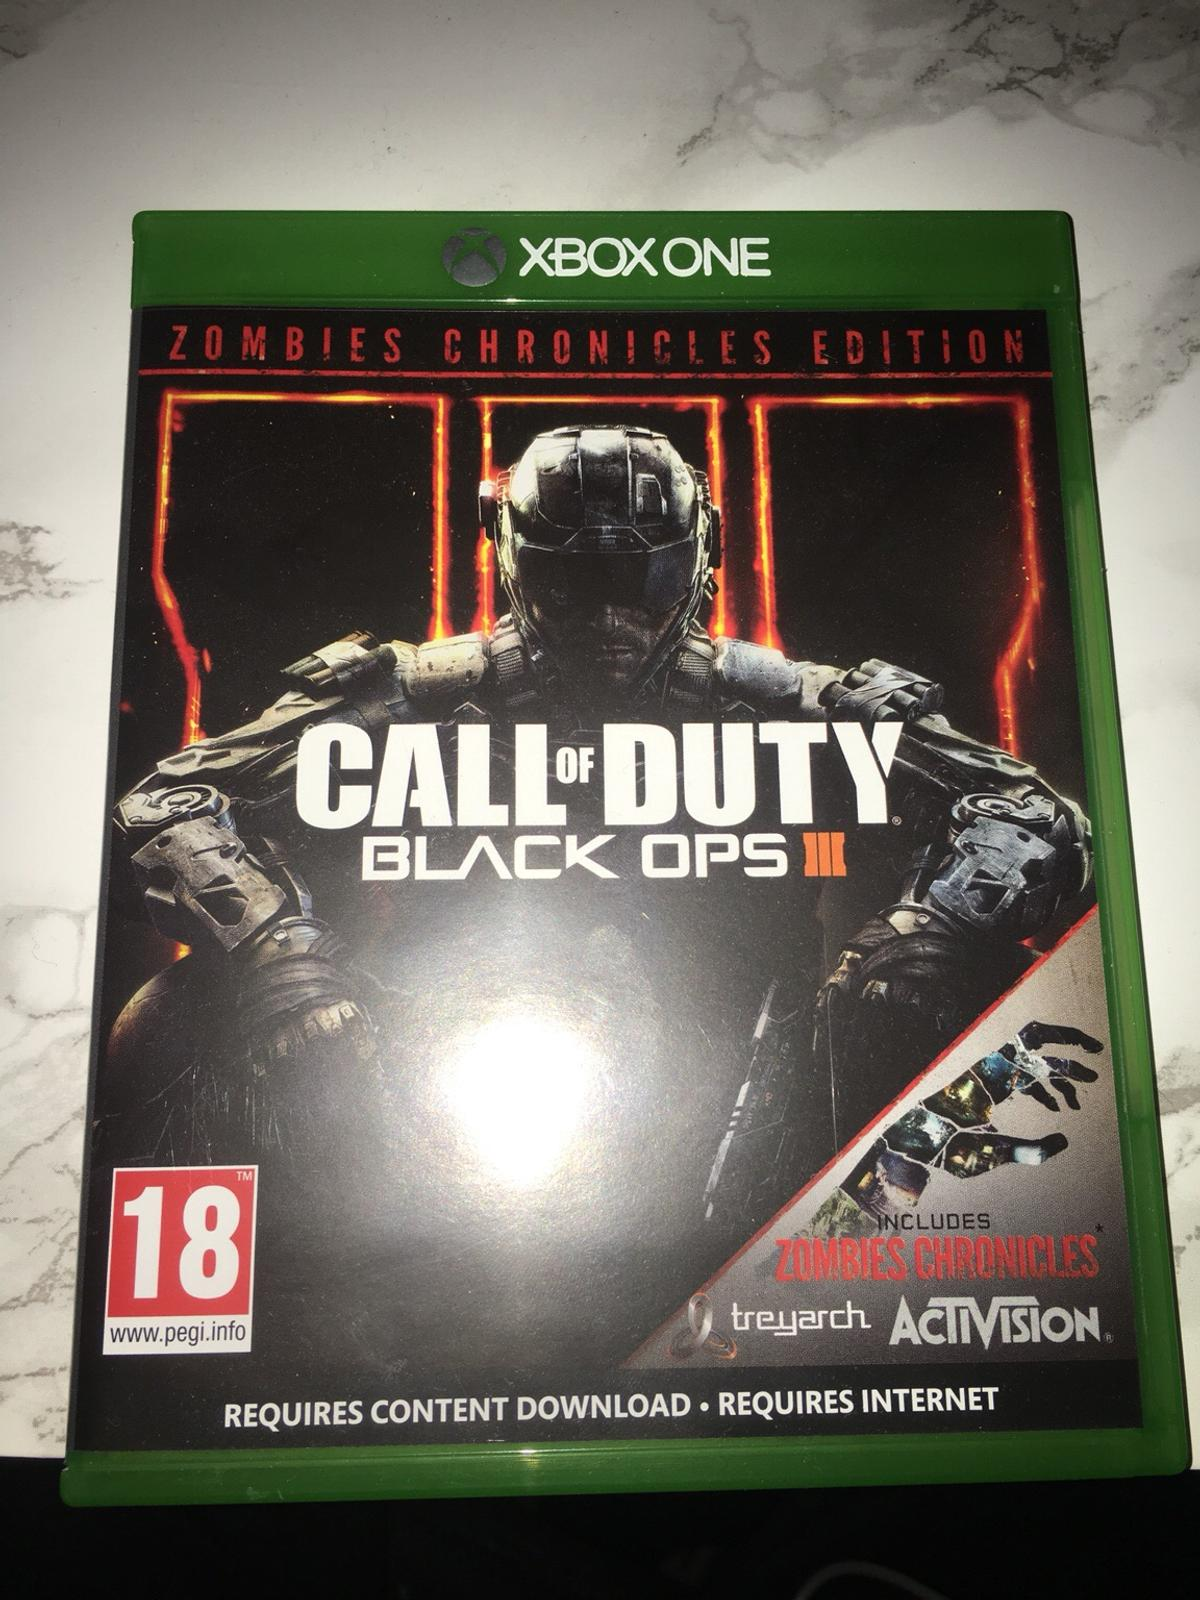 Black ops 3 Zombie Chronicles Edition